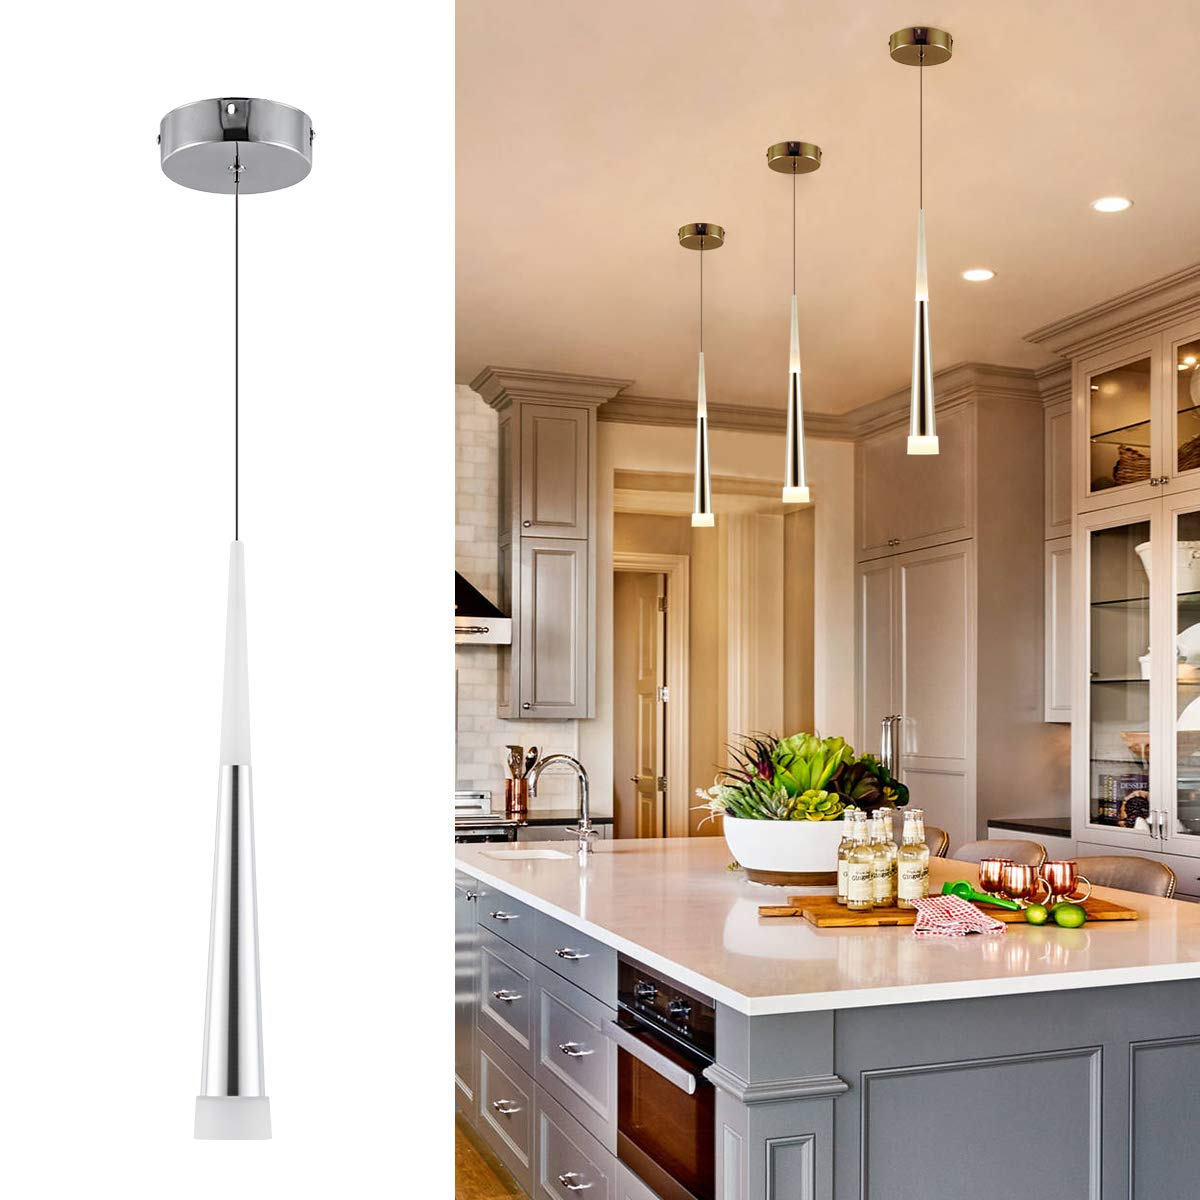 Harchee modern led pendant light with acrylic shade adjustable cone mini pendant lighting for kitchen island bedroom dining room bar 6w warm white